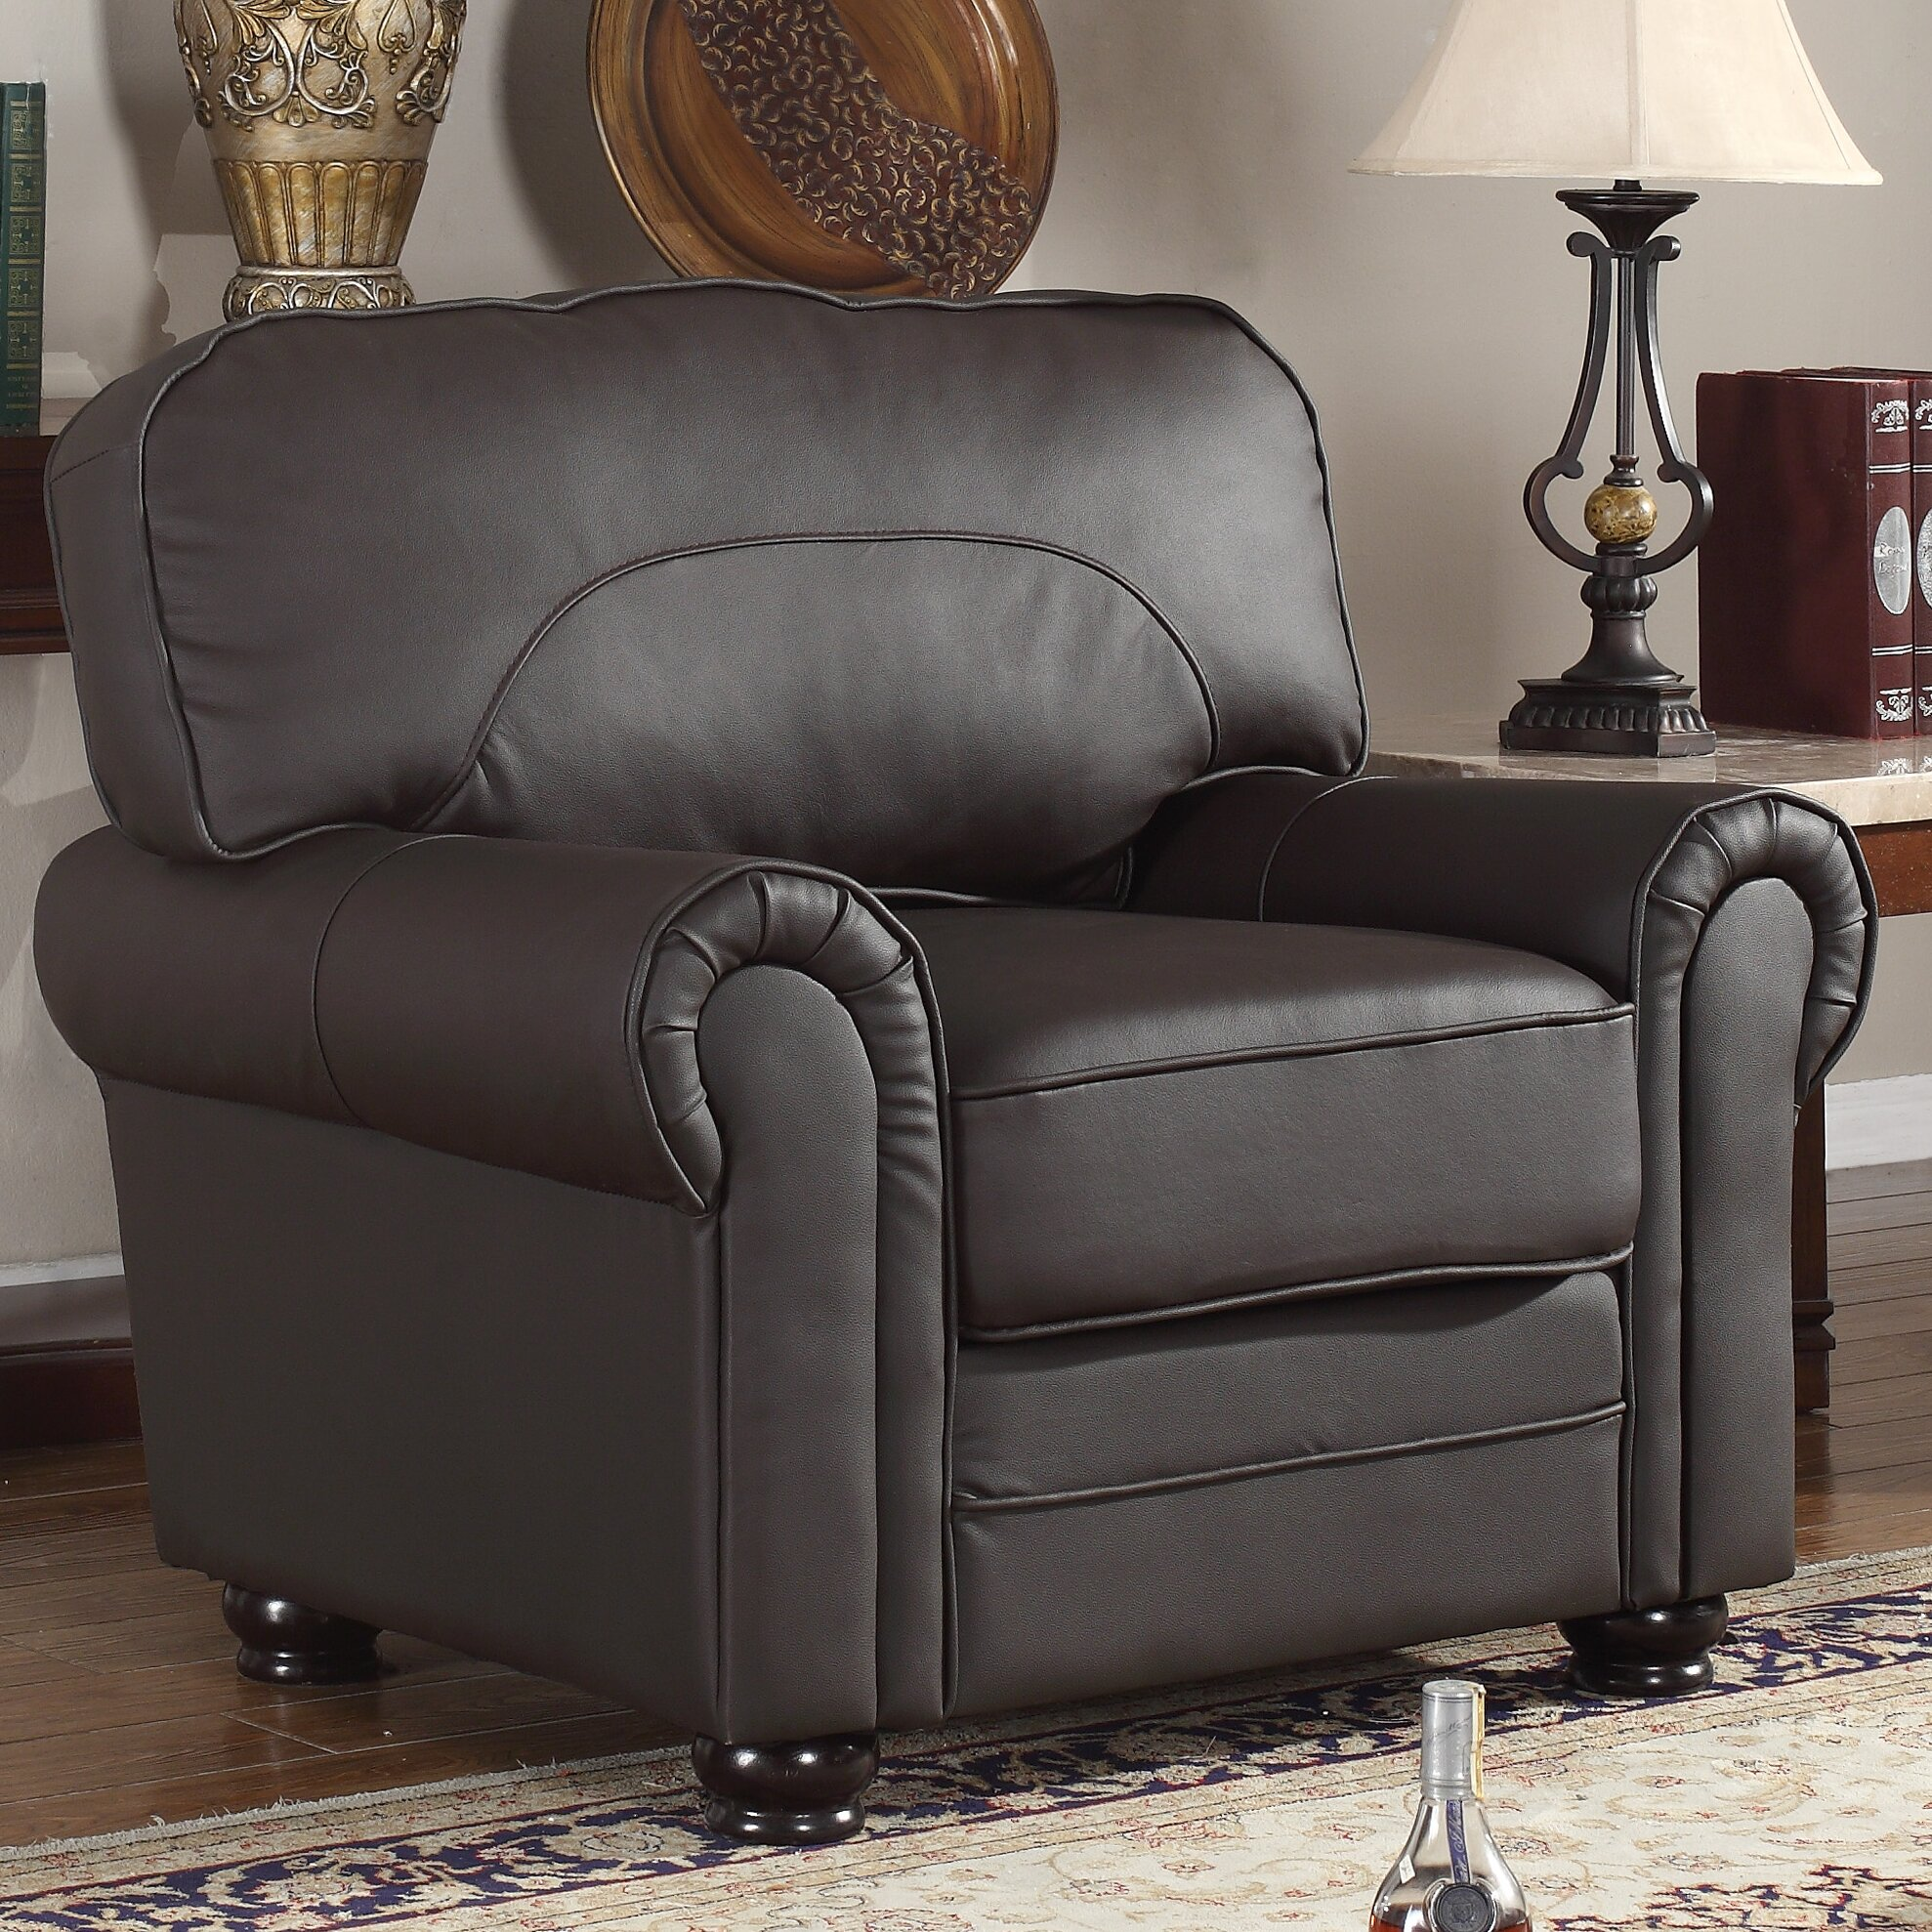 Madison Home USA Leather Upholstered Scroll Armchair. Madison Home USA Leather Upholstered Scroll Armchair   Reviews